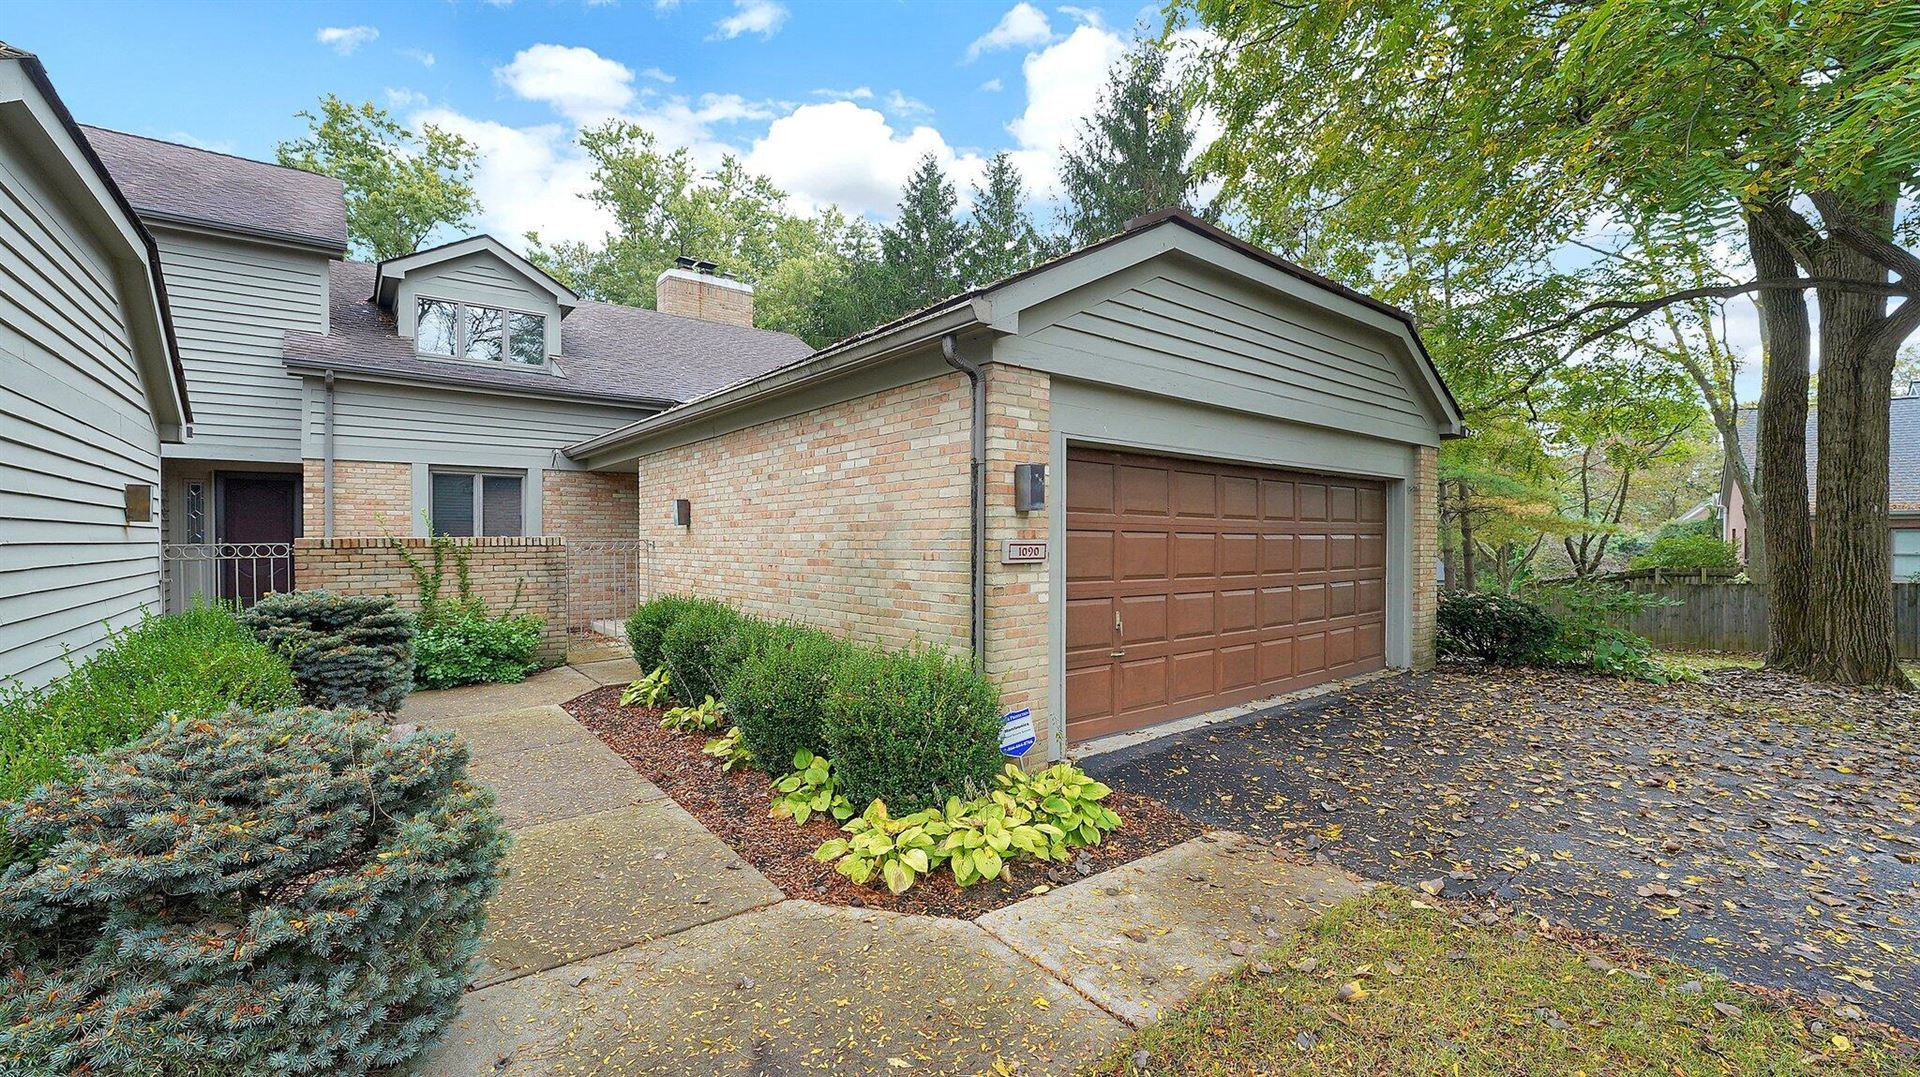 Photo of 1090 Strathaven Court E #4D, Worthington, OH 43085 (MLS # 221040409)